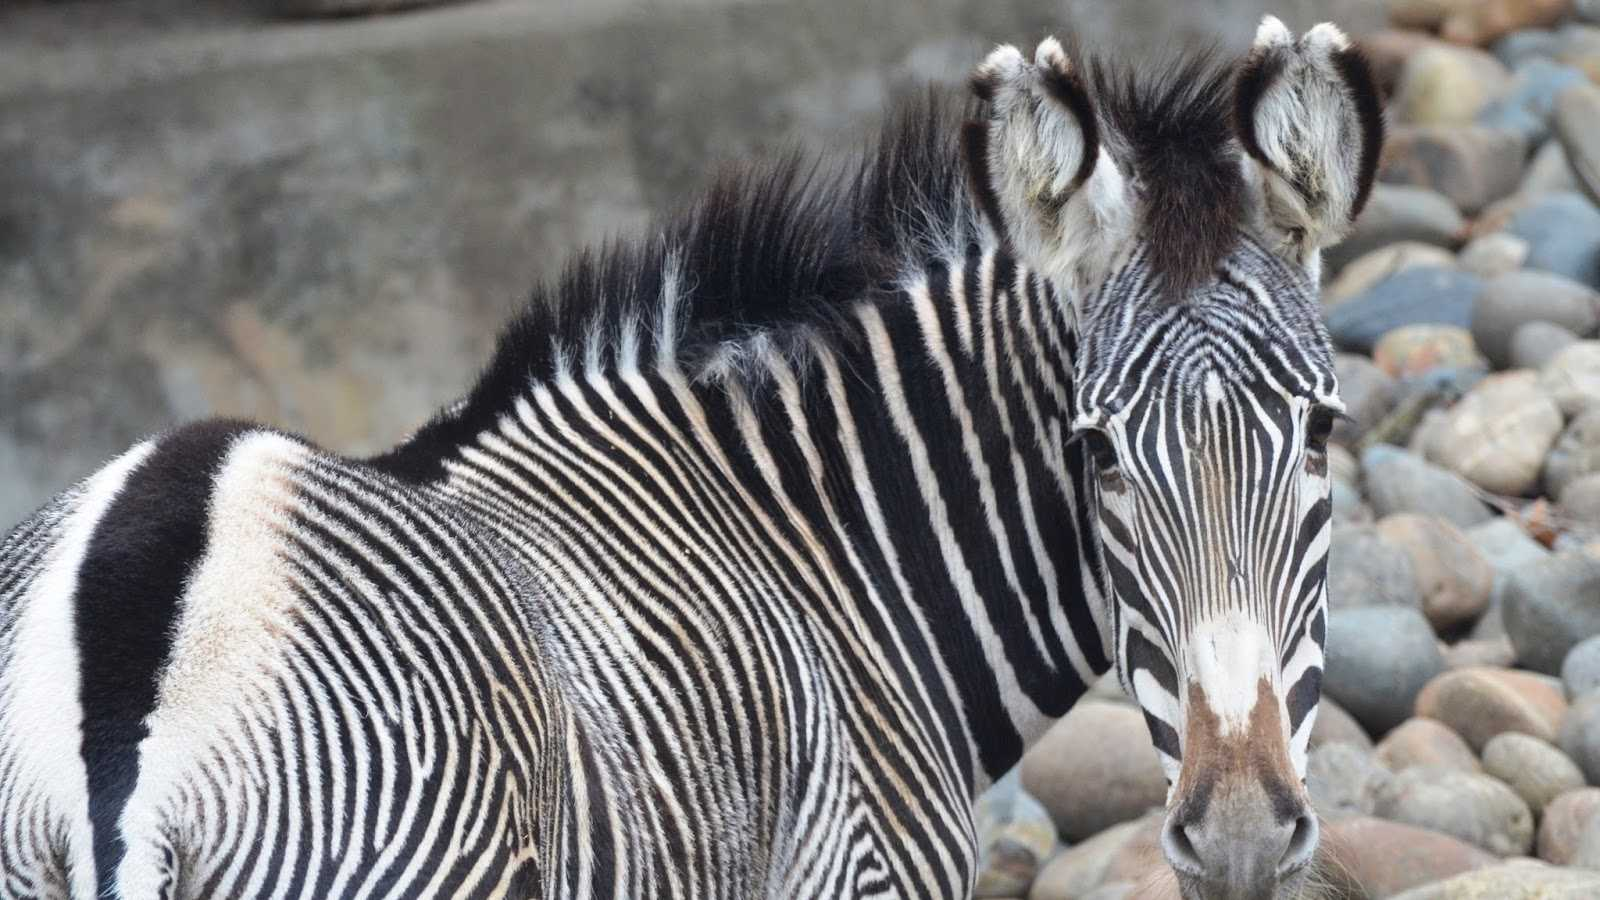 Mara the Grevy's Zebra died Sunday, officials said.